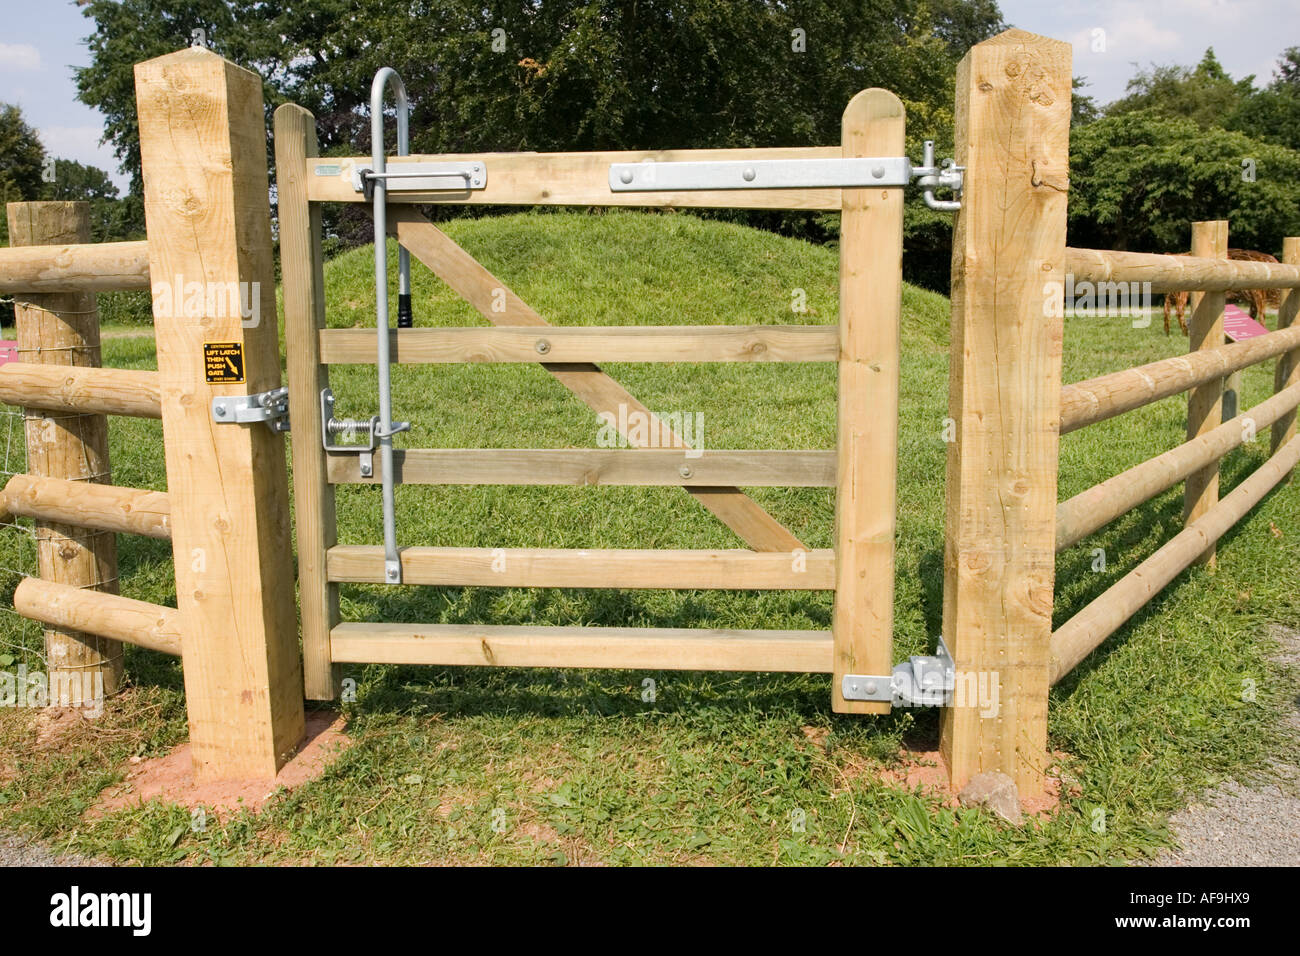 Newly erected small wooden field gate for use on rights of way Royal Agricultural Show Stoneleigh UK - Stock Image